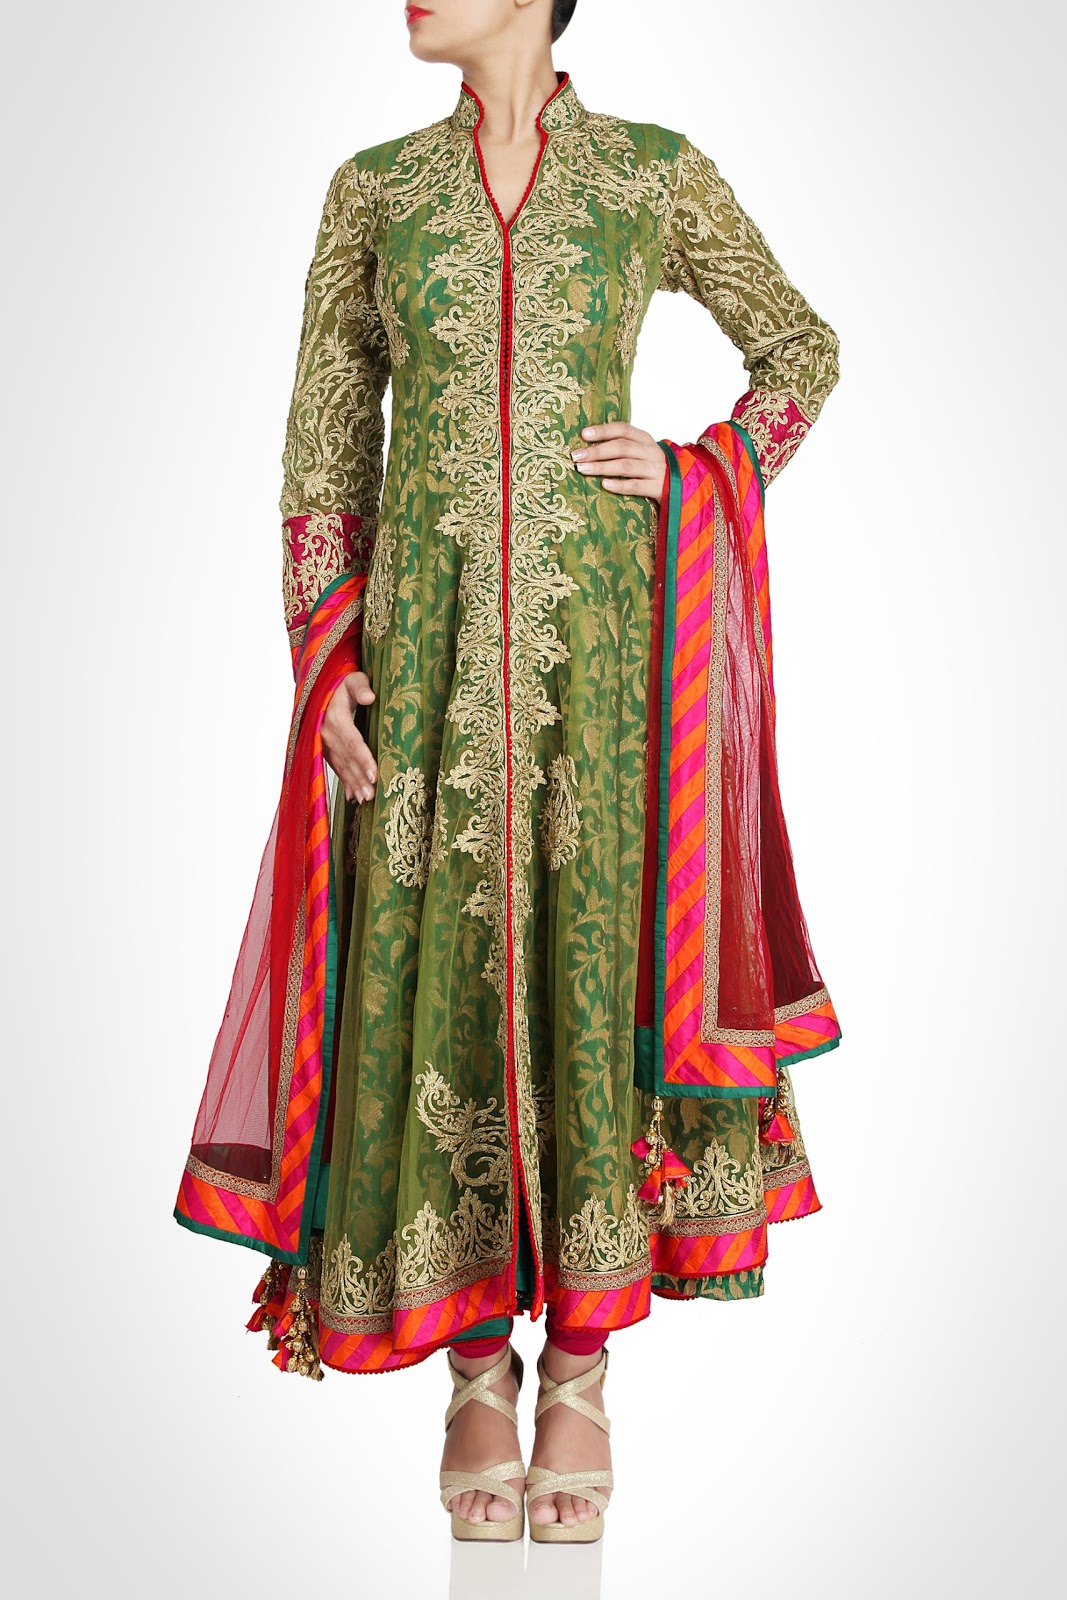 Indian Bridal Outfits 2013 by Rimple & Harpreet Narula ...